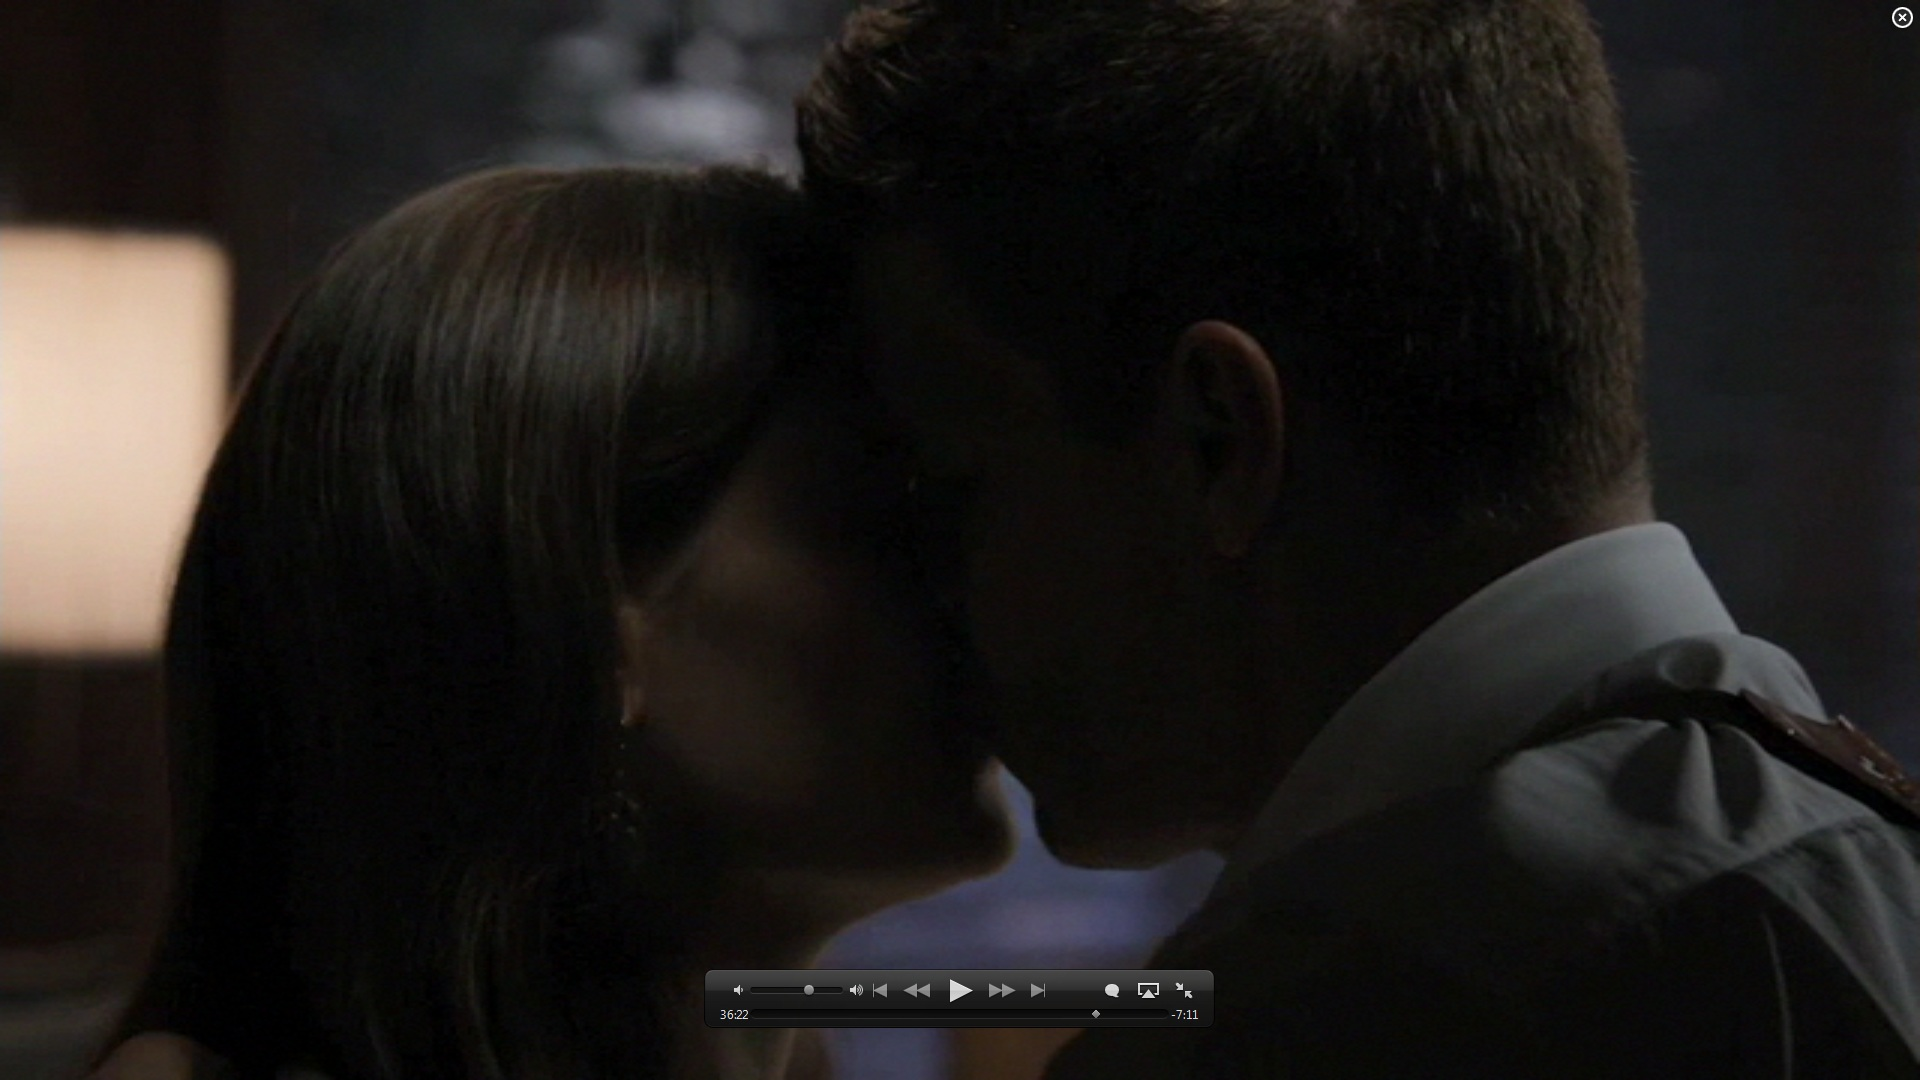 7x01 kiss booth and bones image 26582103 fanpop